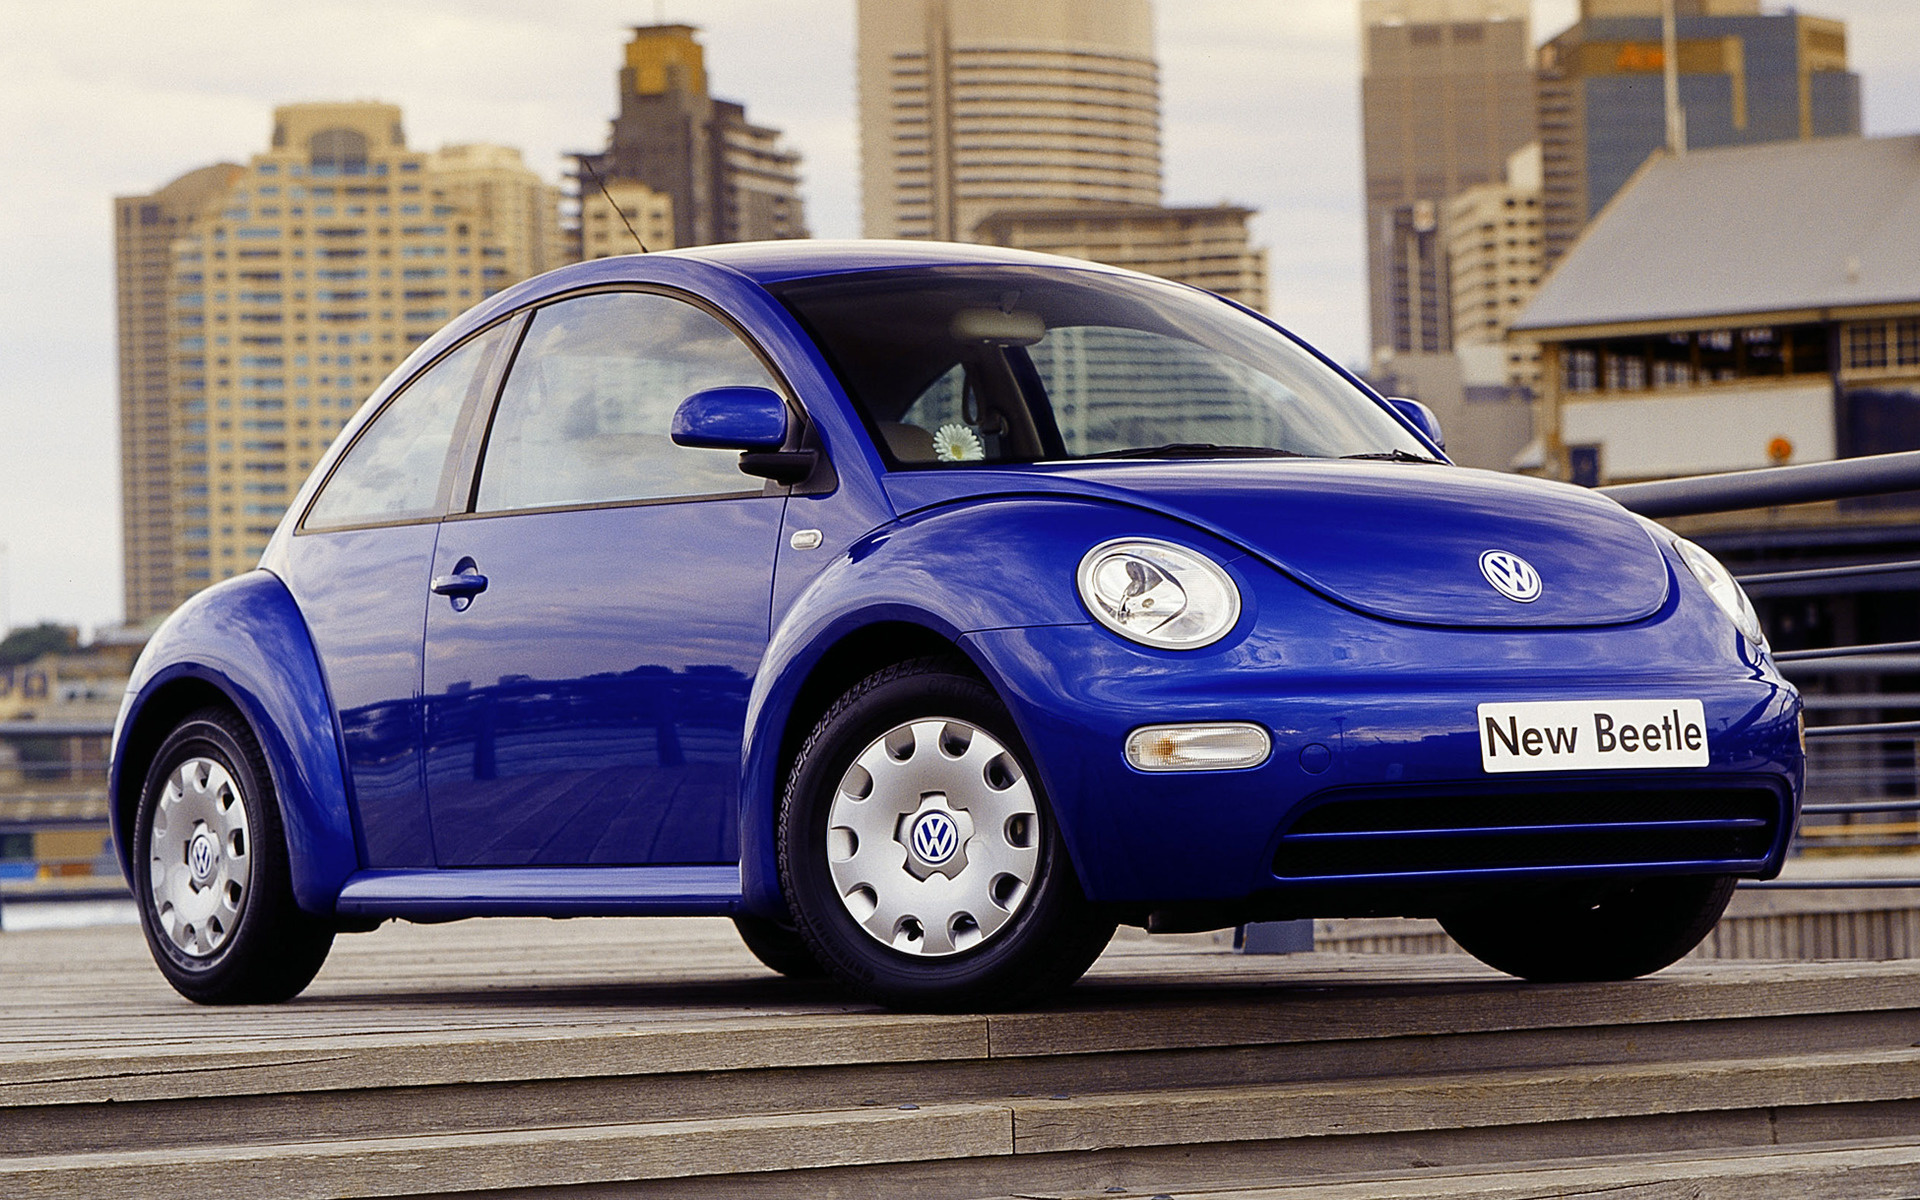 Volkswagen New Beetle Car Wallpaper on 2001 Dodge Ram